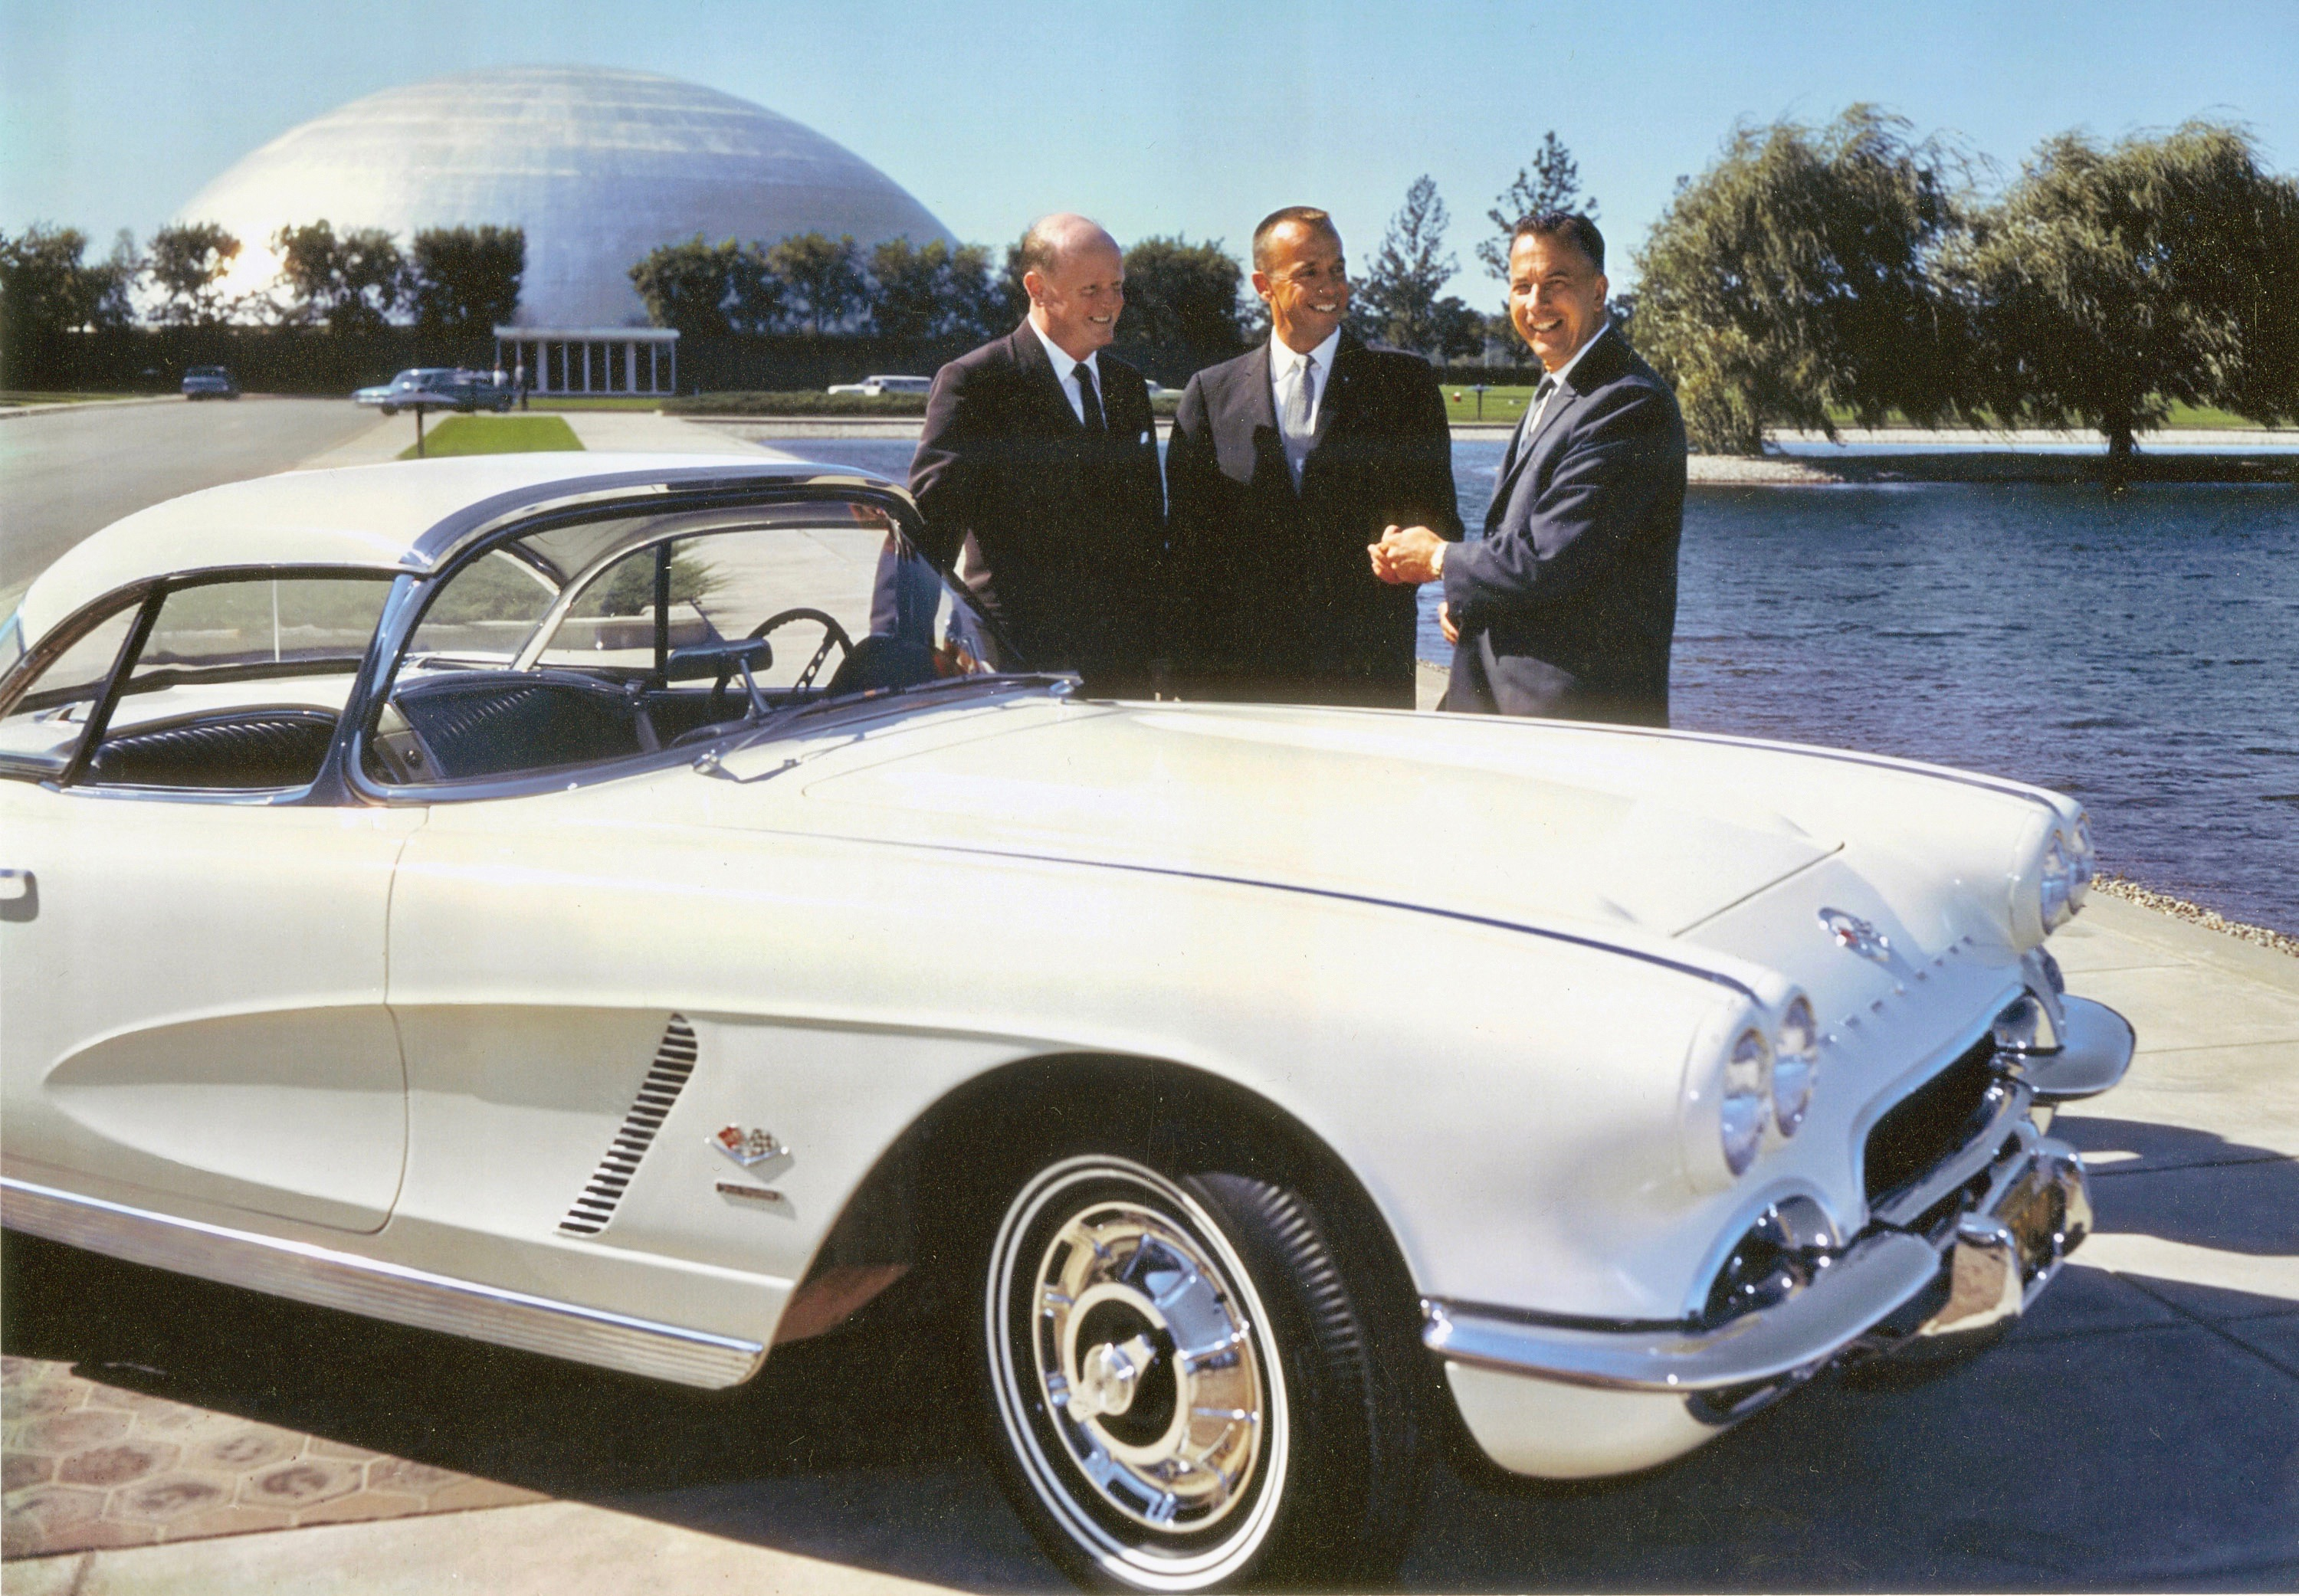 Astronaut Alan Shepard (center) visits the General Motors tech center with design director Bill Mitchell (left) and Chevy general manager Ed Cole to pick up his 1962 Corvette | Museum photo